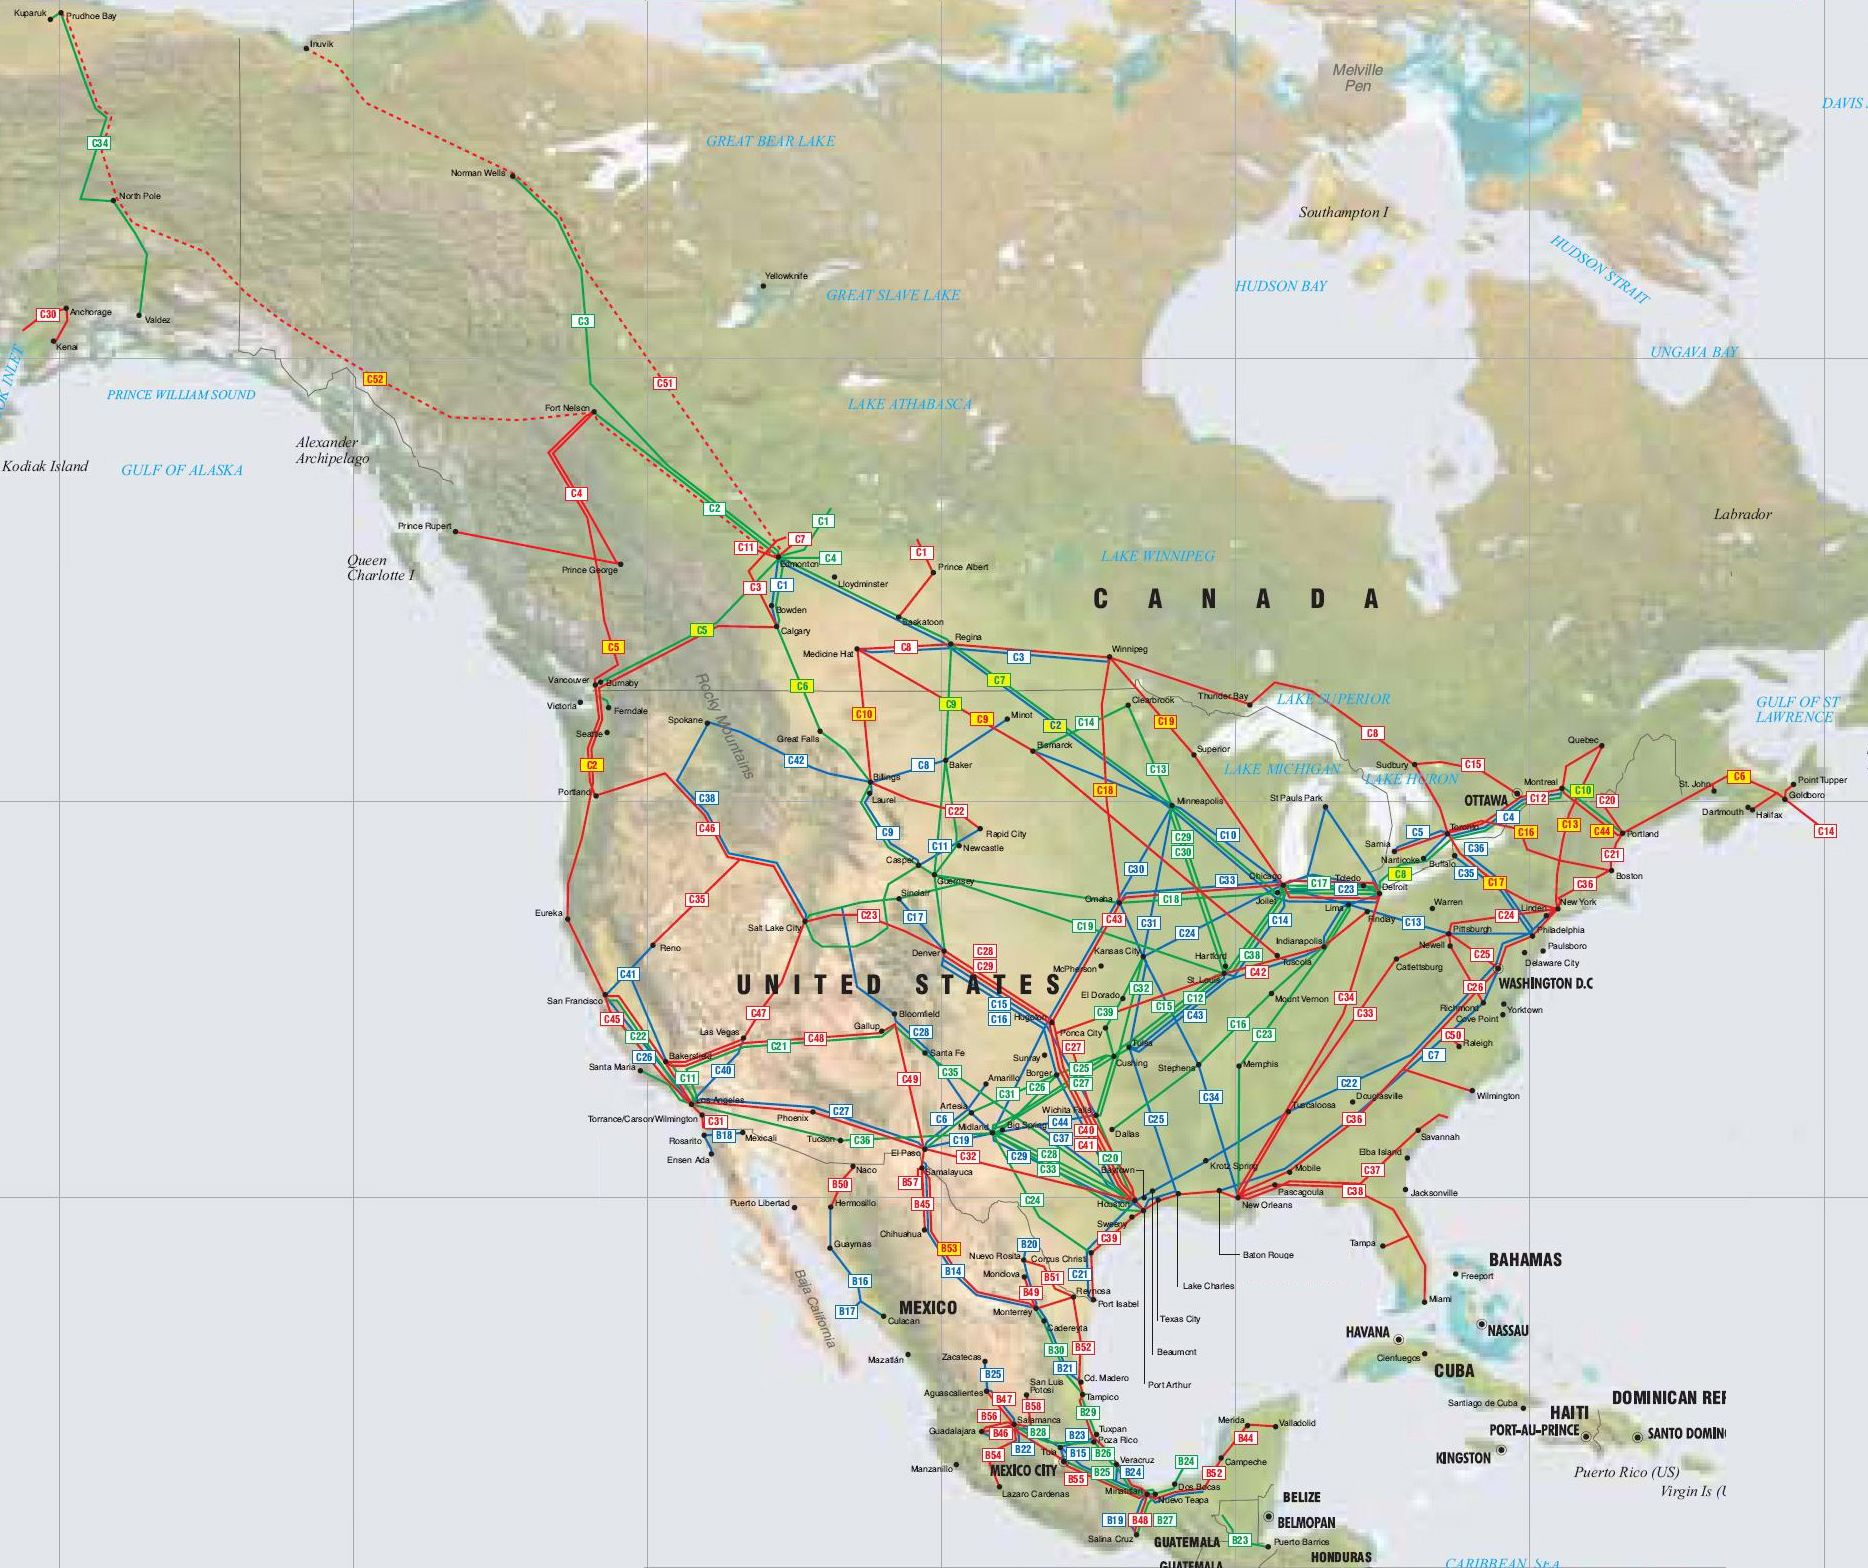 North America oil gas and products pipelines map on map to